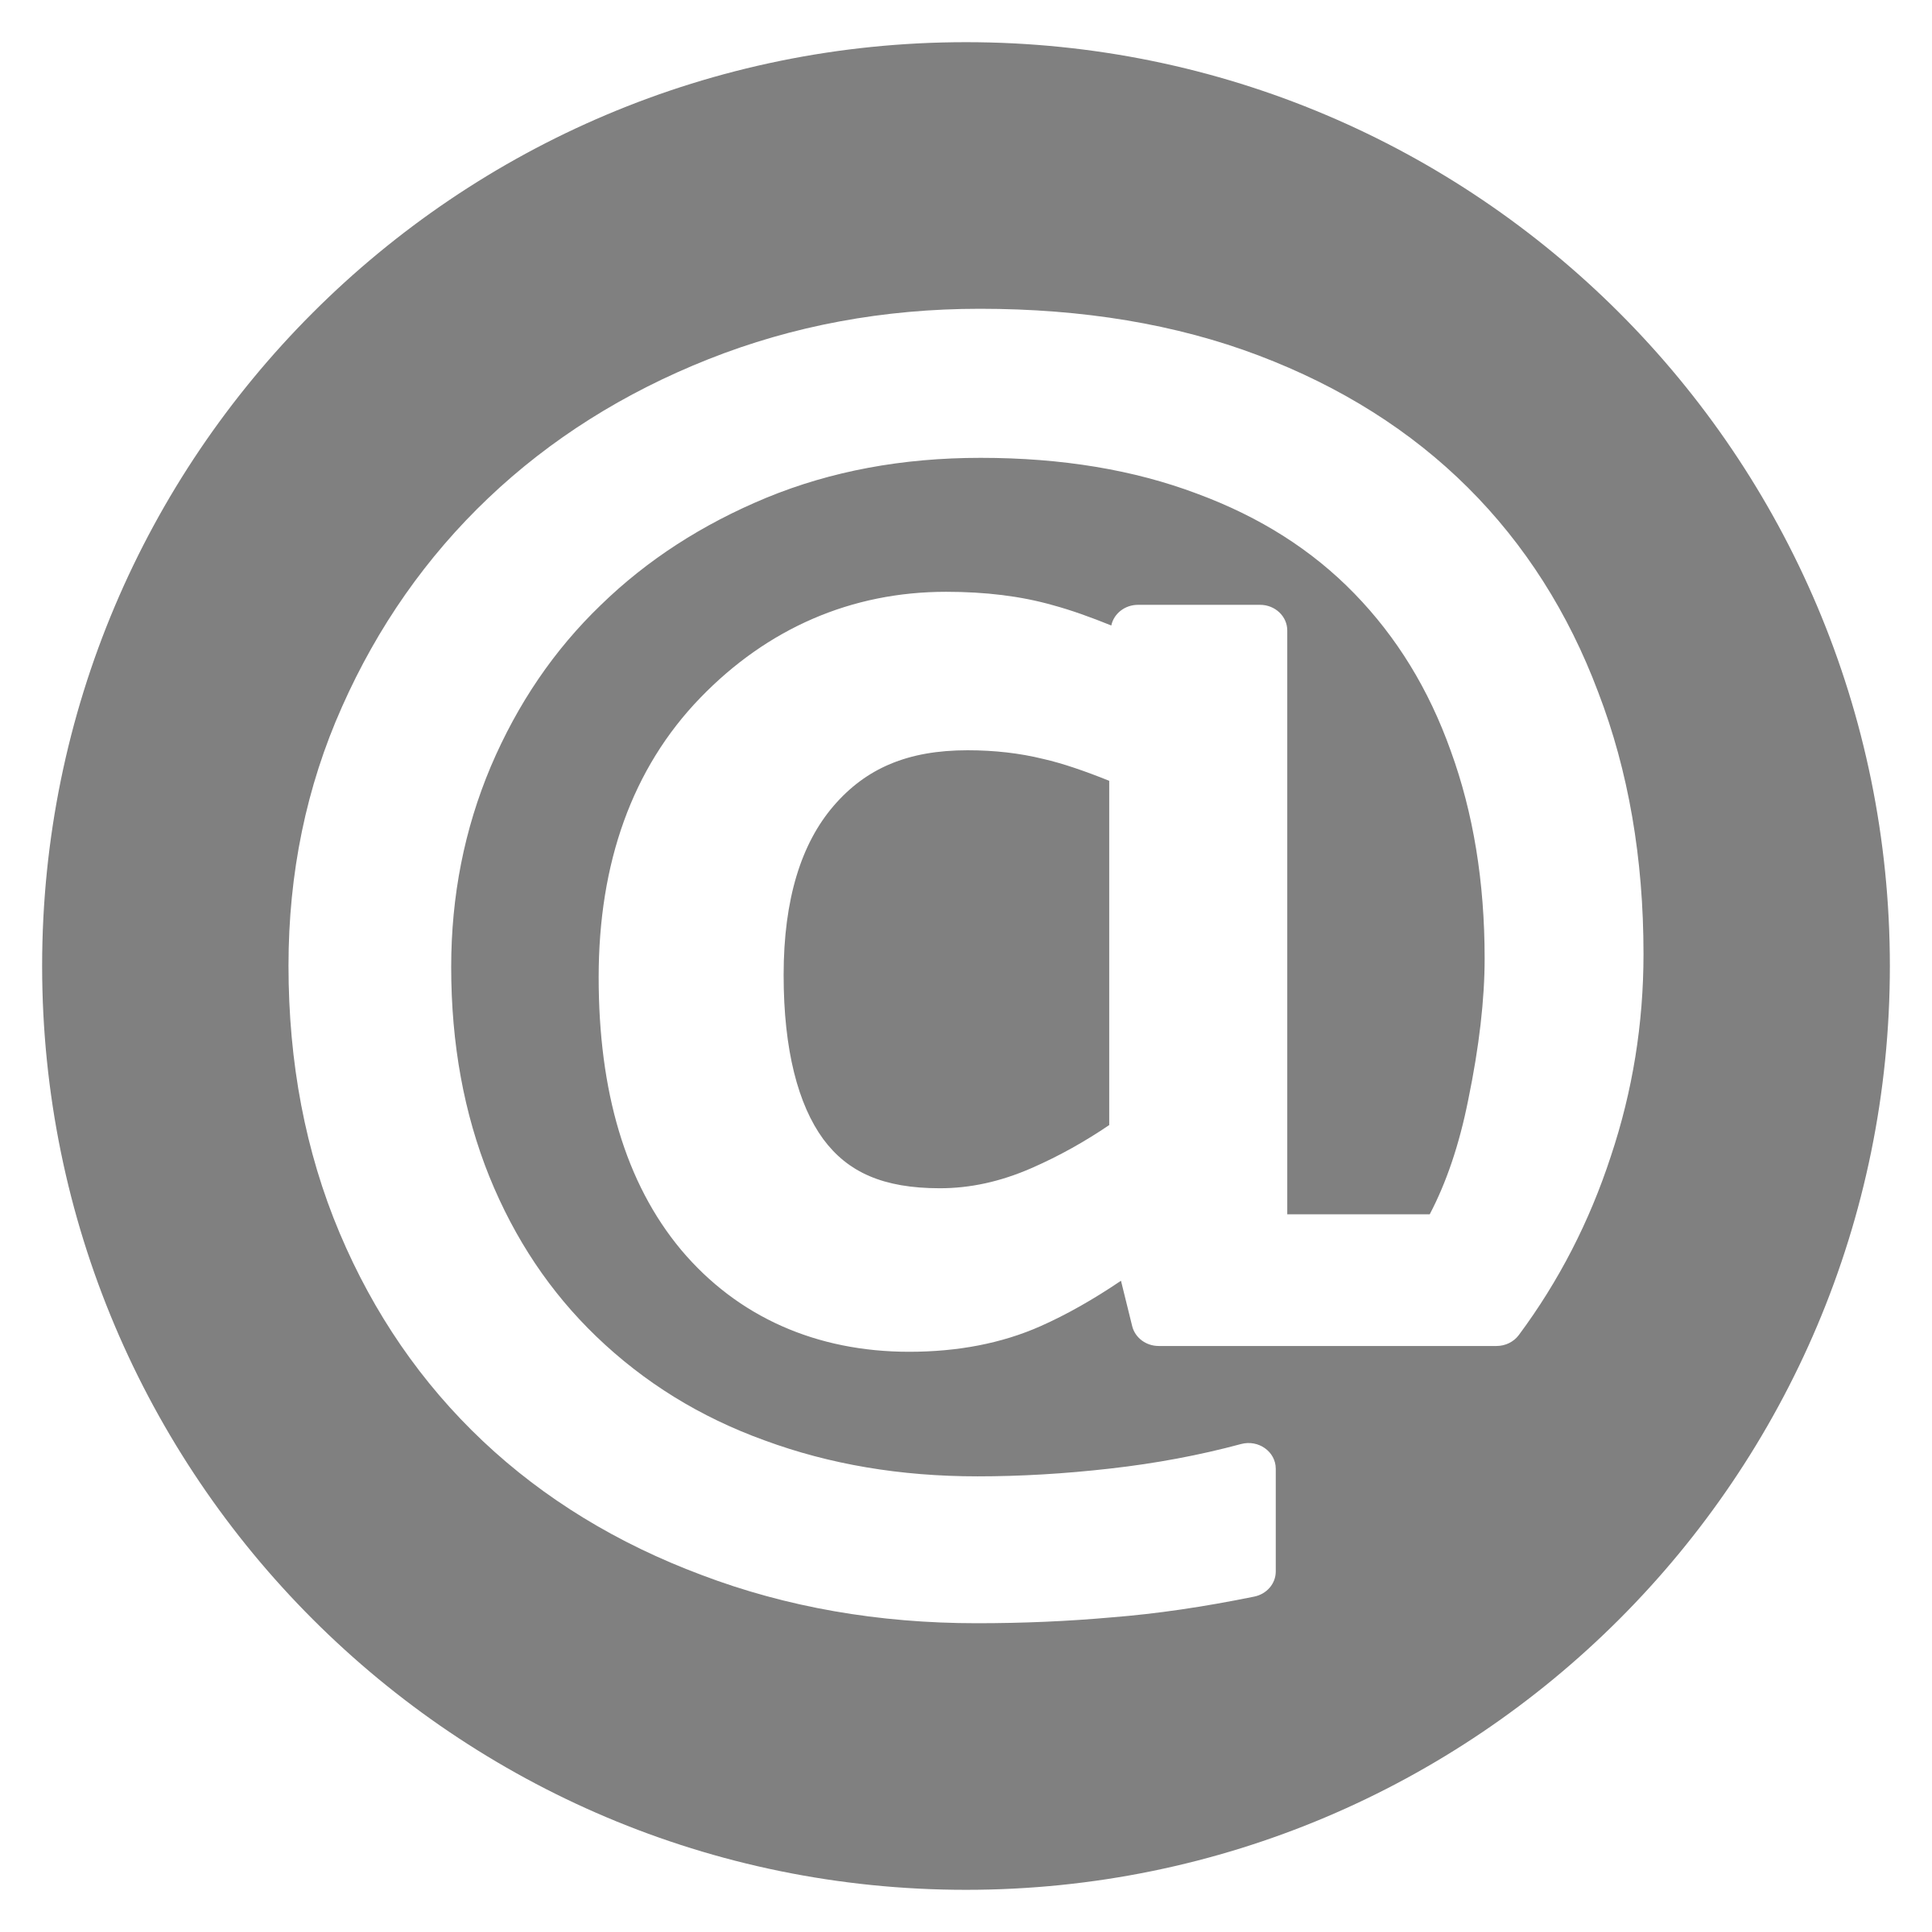 Email Icon - White on Grey by rygle